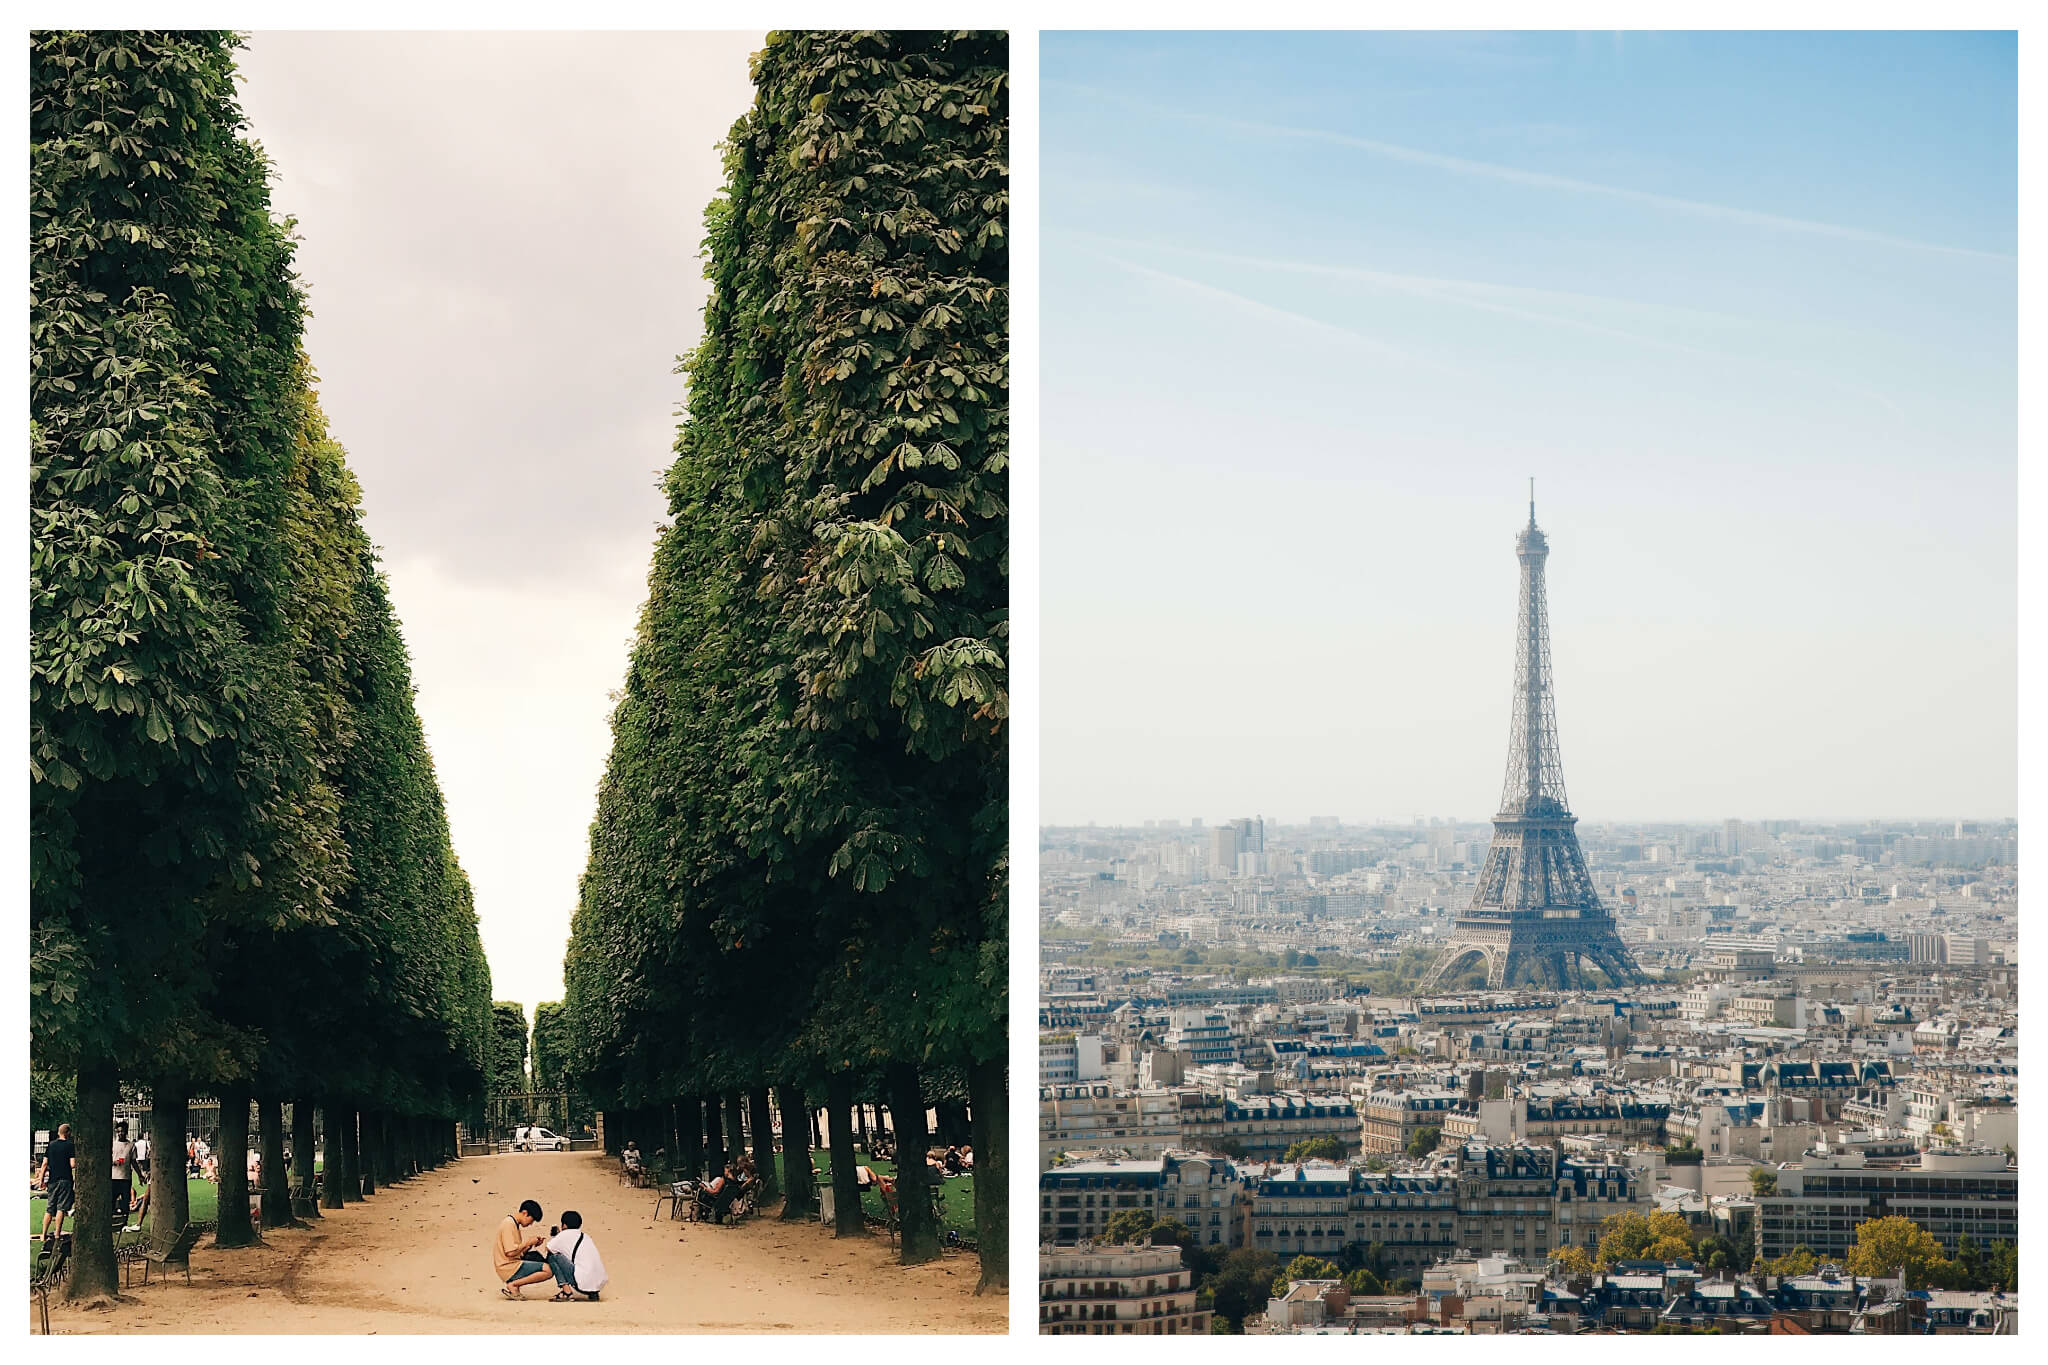 Left: Two children play between rows of tress in a garden in Paris, Right: The Eiffel Tower stands out among Parisian apartment buildings on a sunny day in Paris.